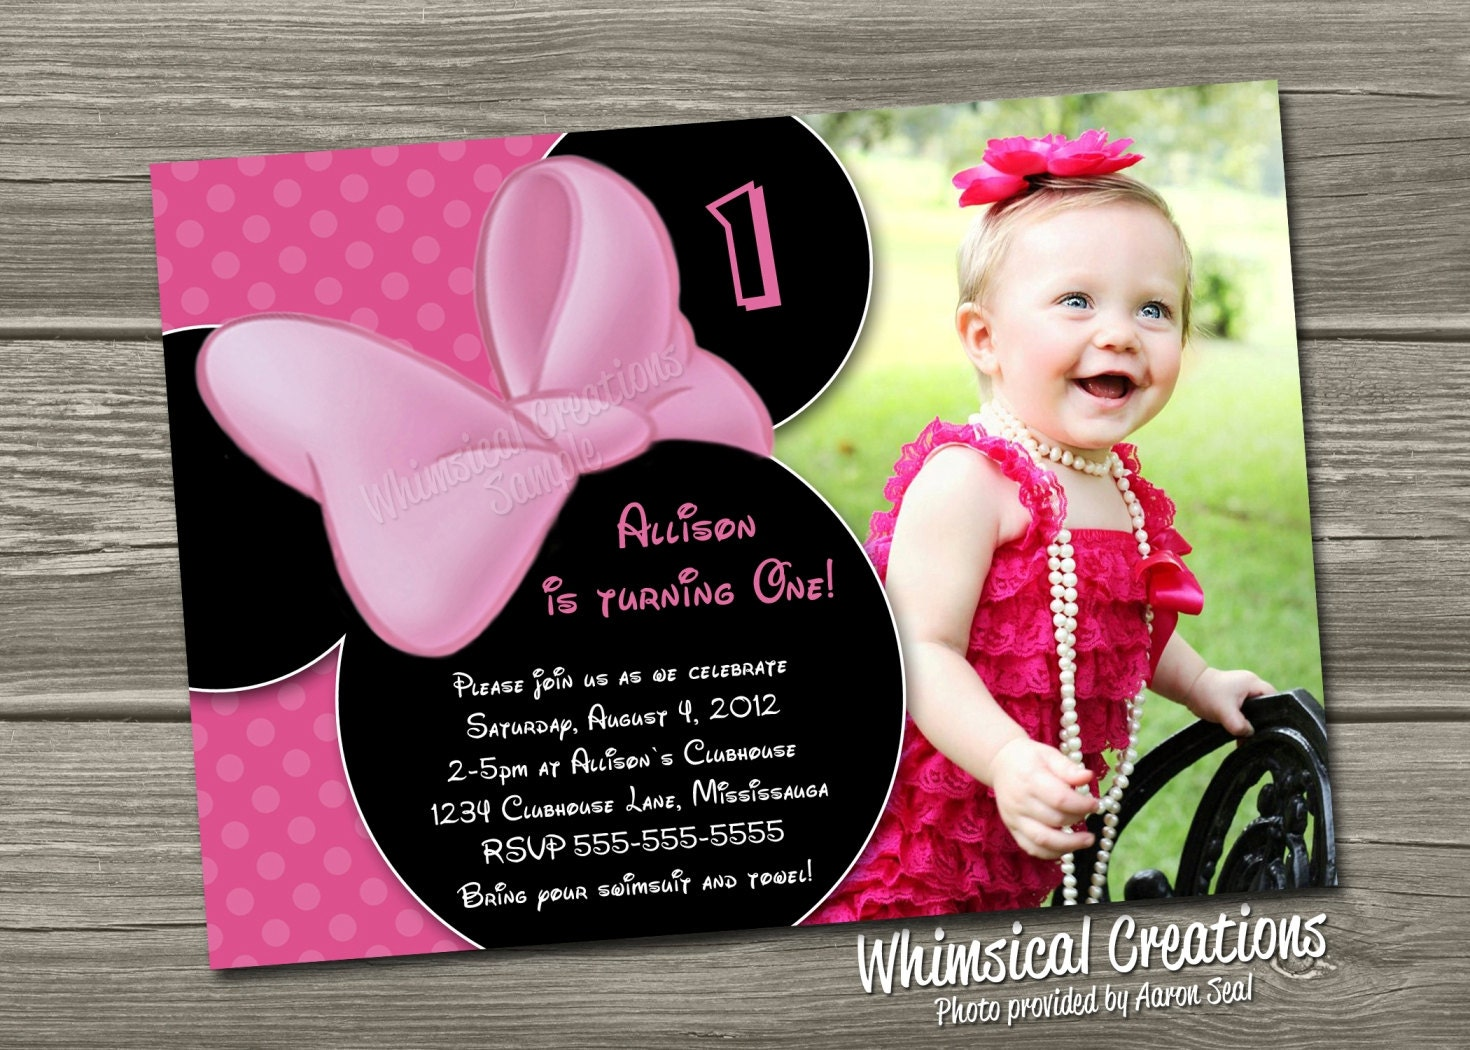 Minnie Mouse Birthday Invitation Digital File I Design You – Minnie Invitations for Birthdays